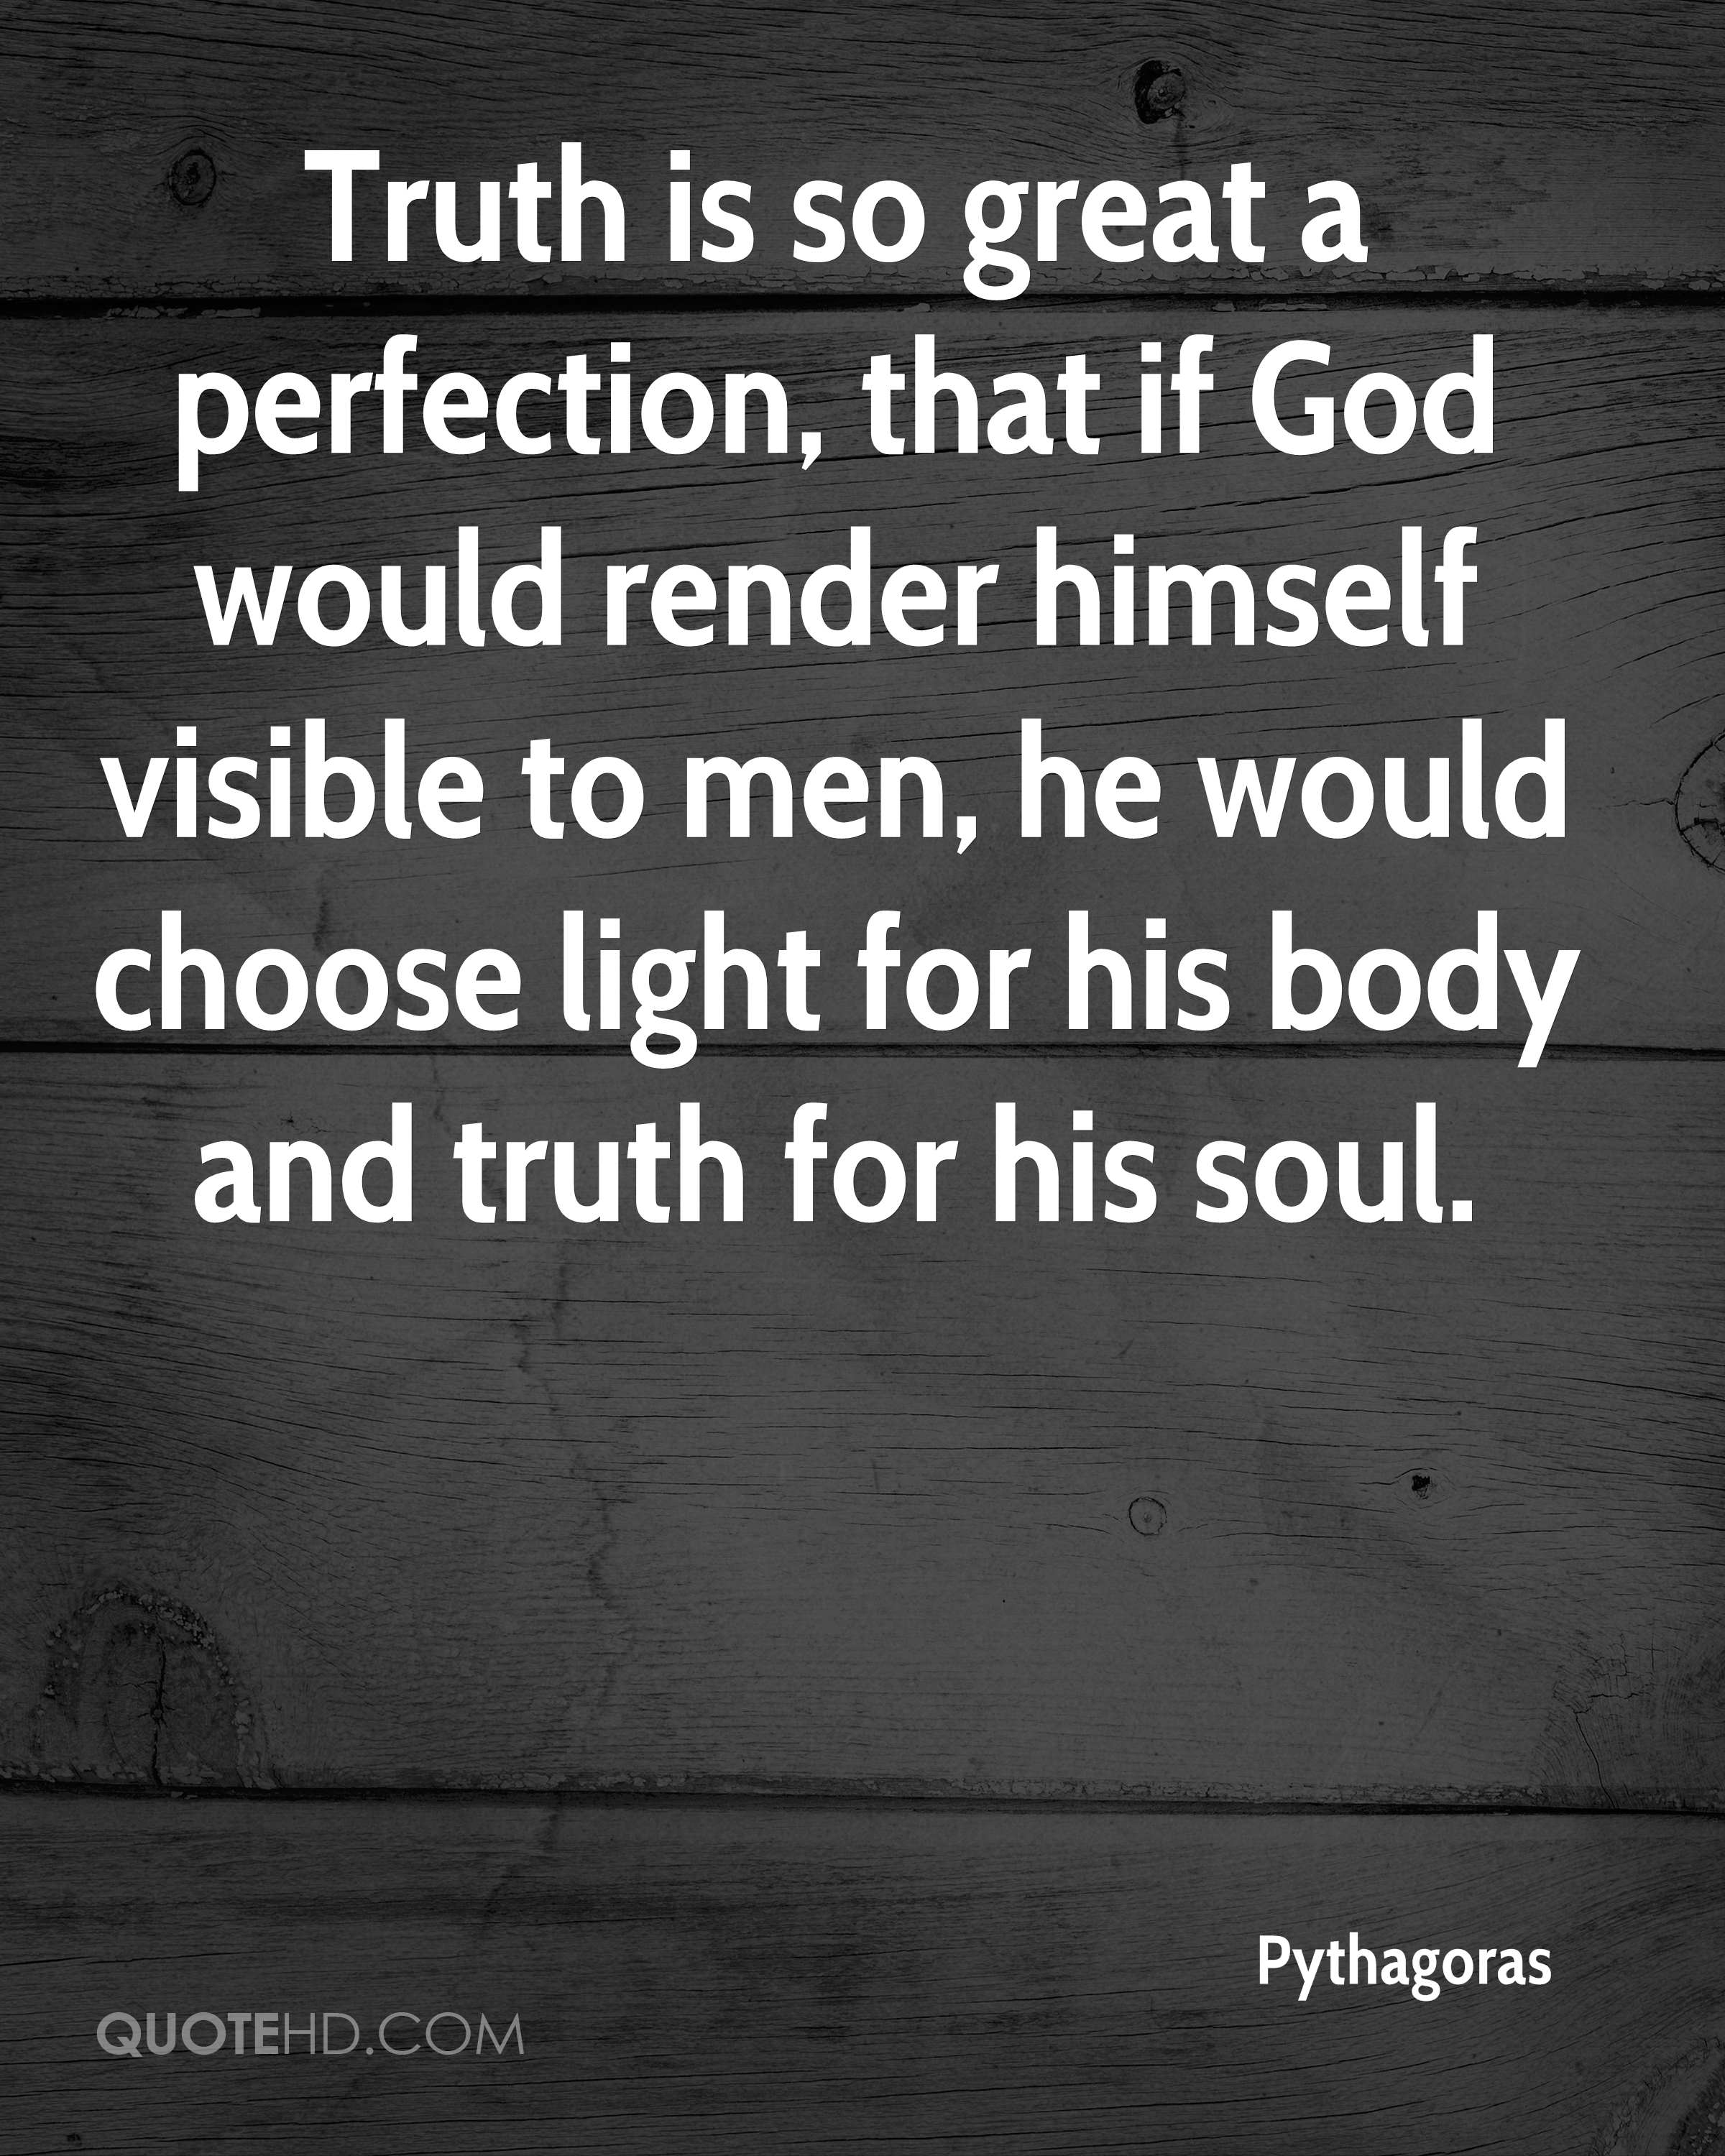 Truth is so great a perfection, that if God would render himself visible to men, he would choose light for his body and truth for his soul.